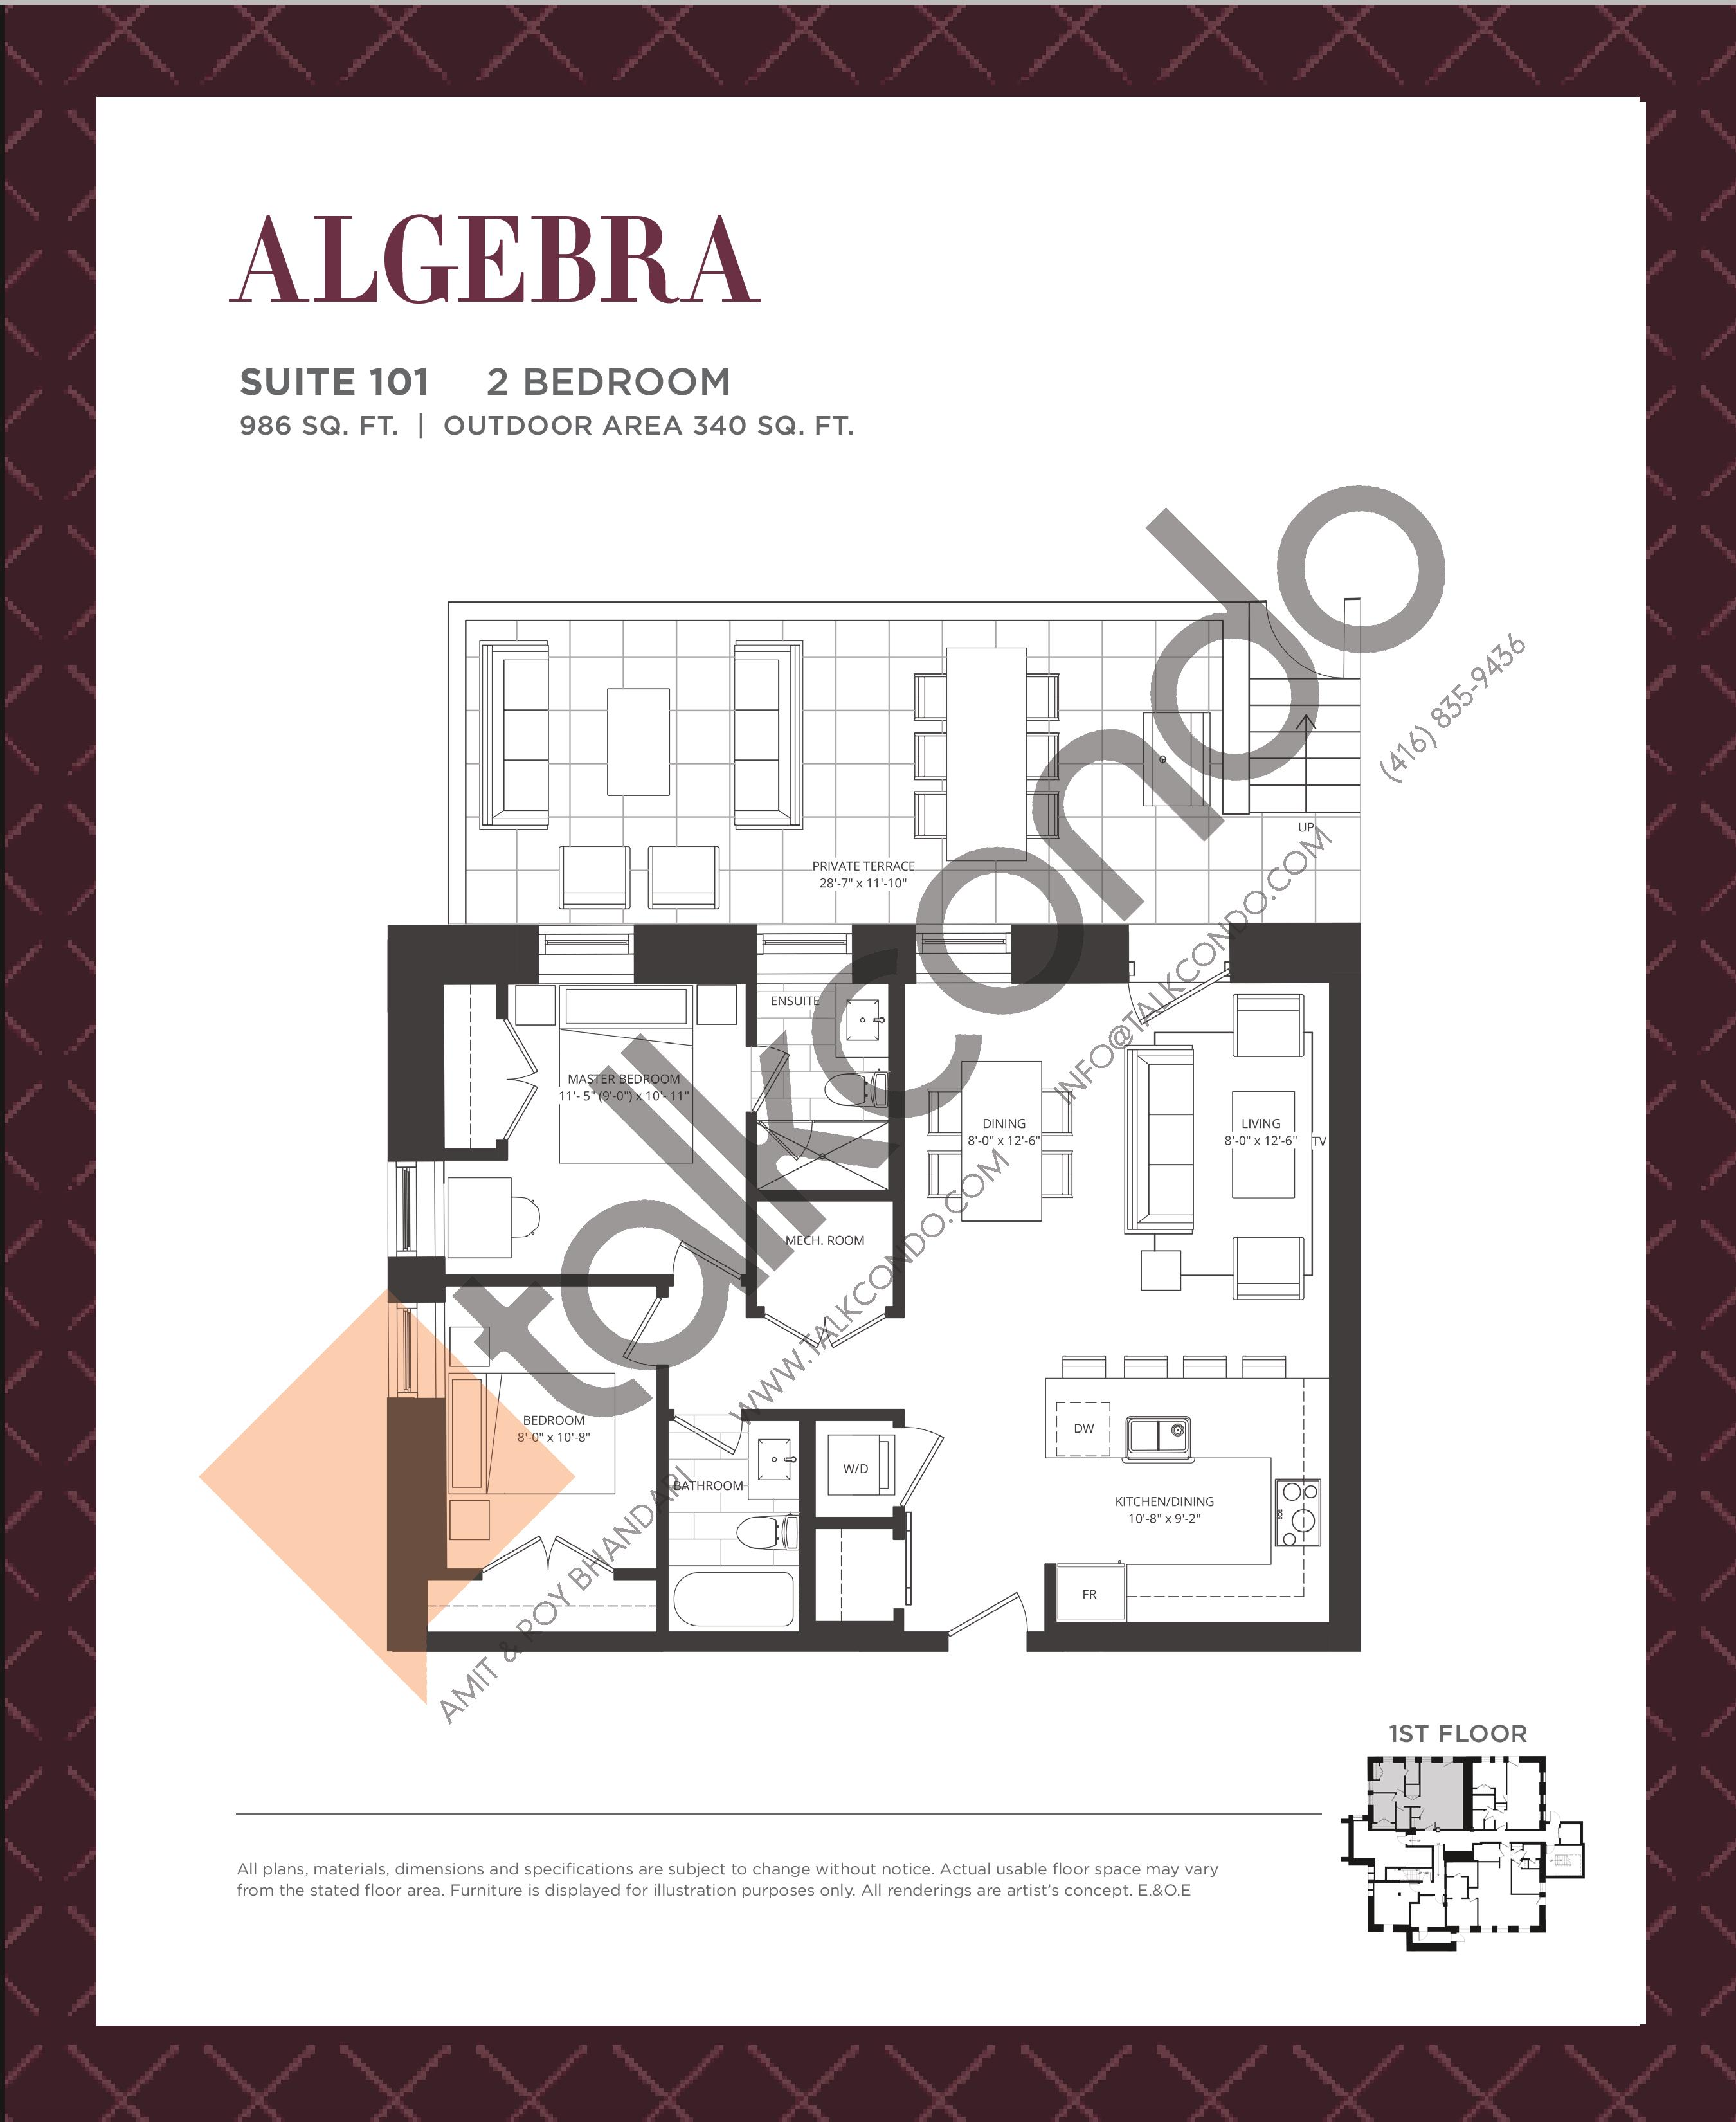 Algebra Floor Plan at King George School Lofts & Town Homes - 986 sq.ft